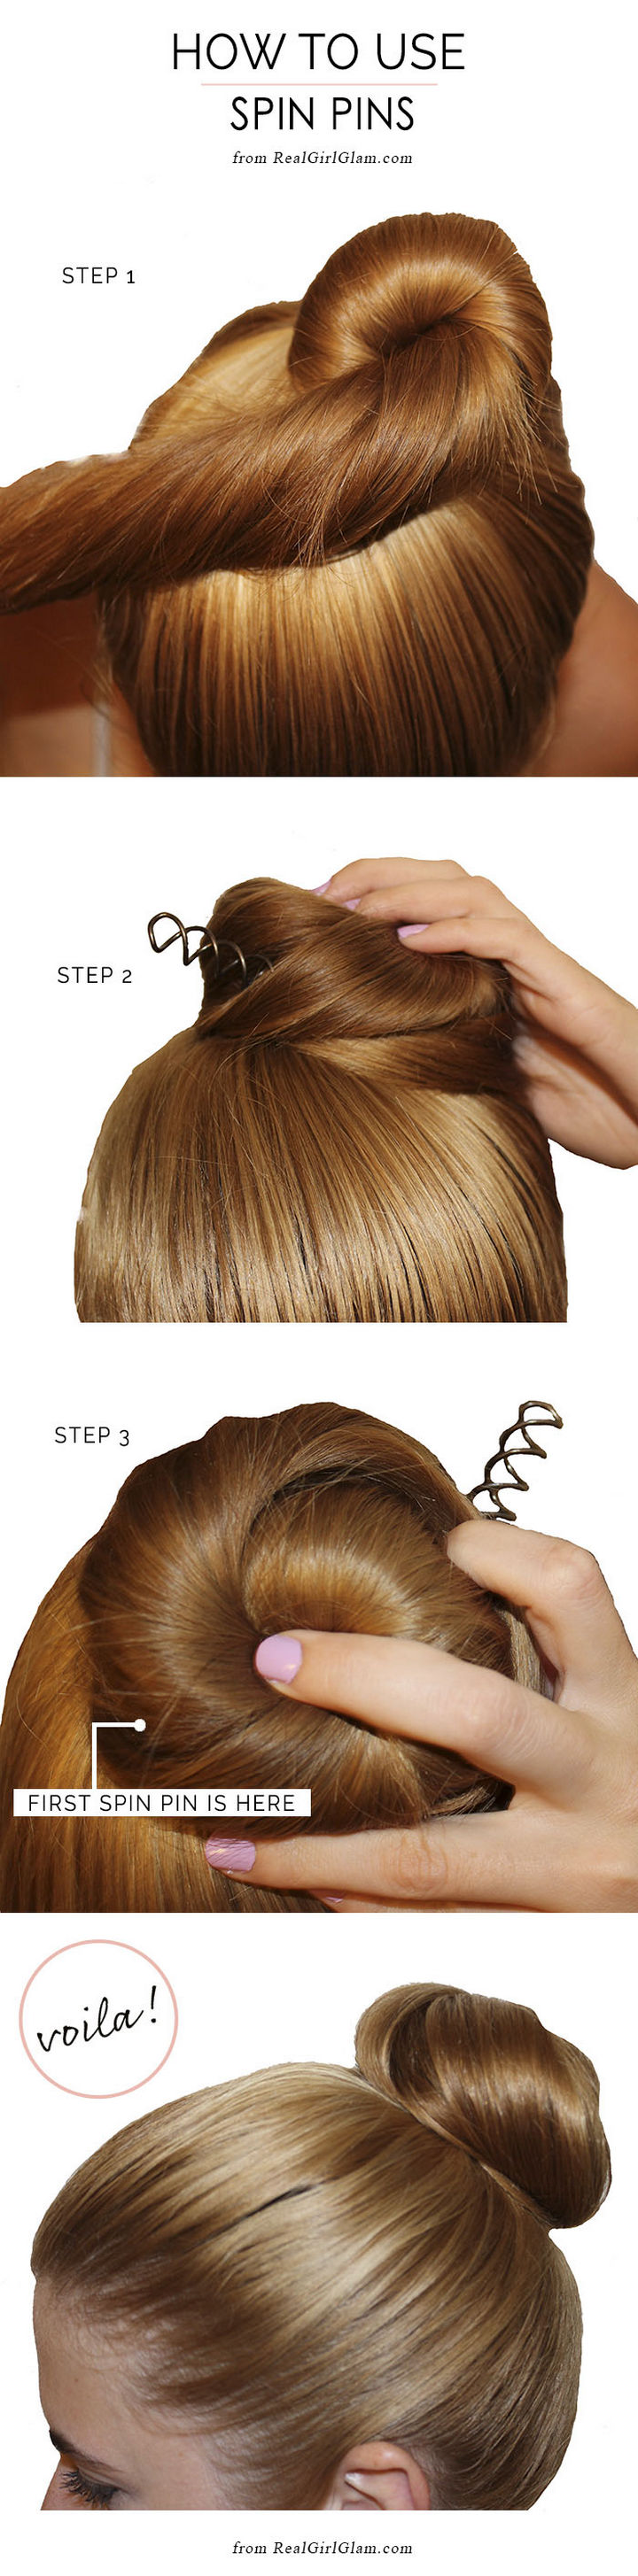 25 Lazy Girl Hair Hacks - Spin pins lets you create an awesome look in seconds!